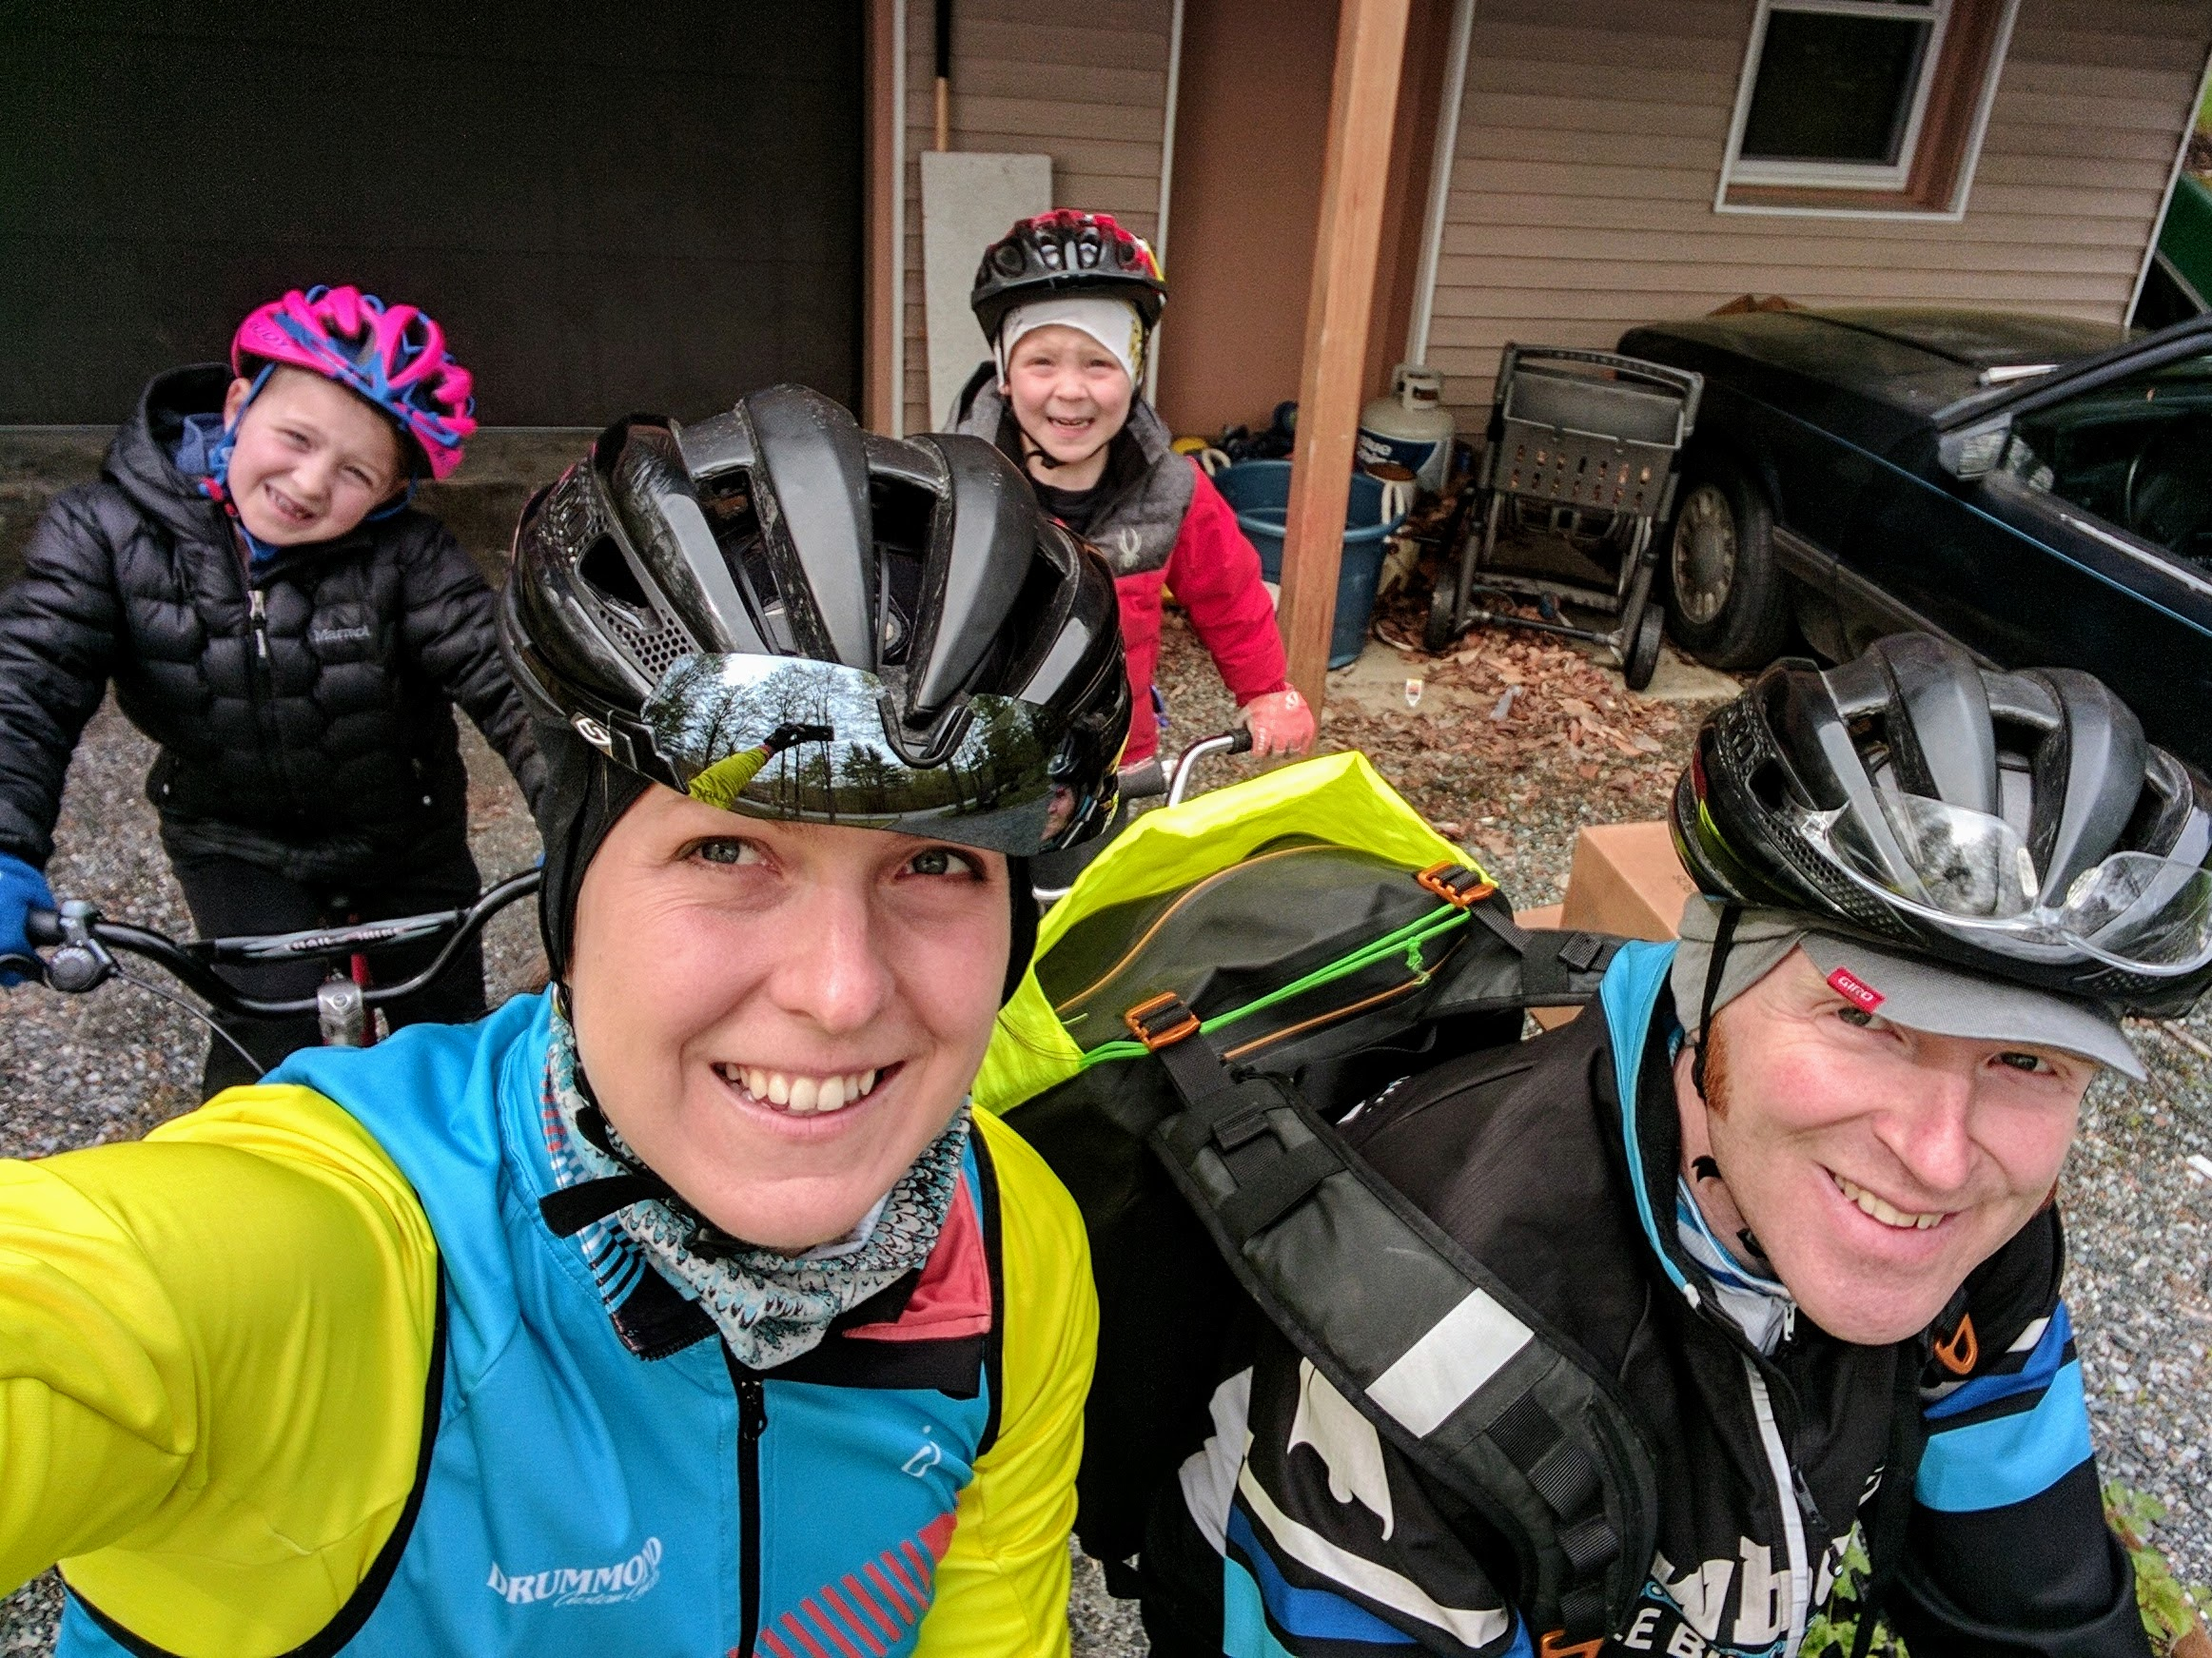 Families who ride together…